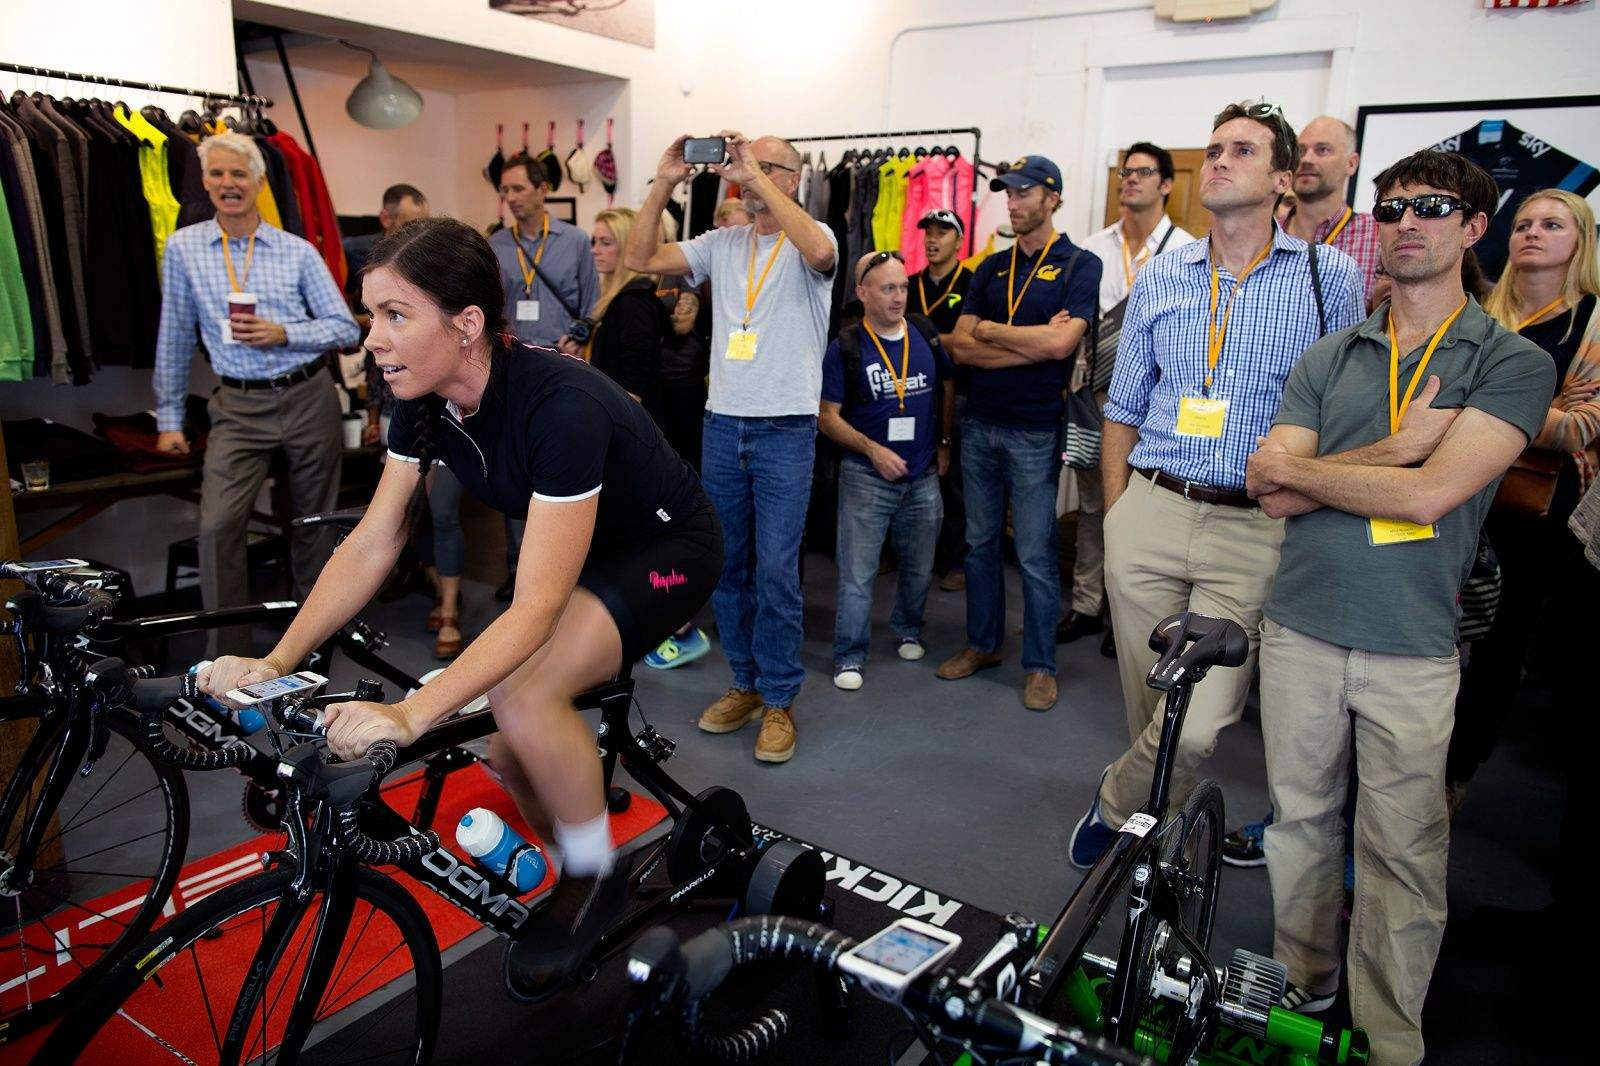 Journalists and bike geeks gather at the Rapha Store in San Francisco for Zwift's launch in September 2014.